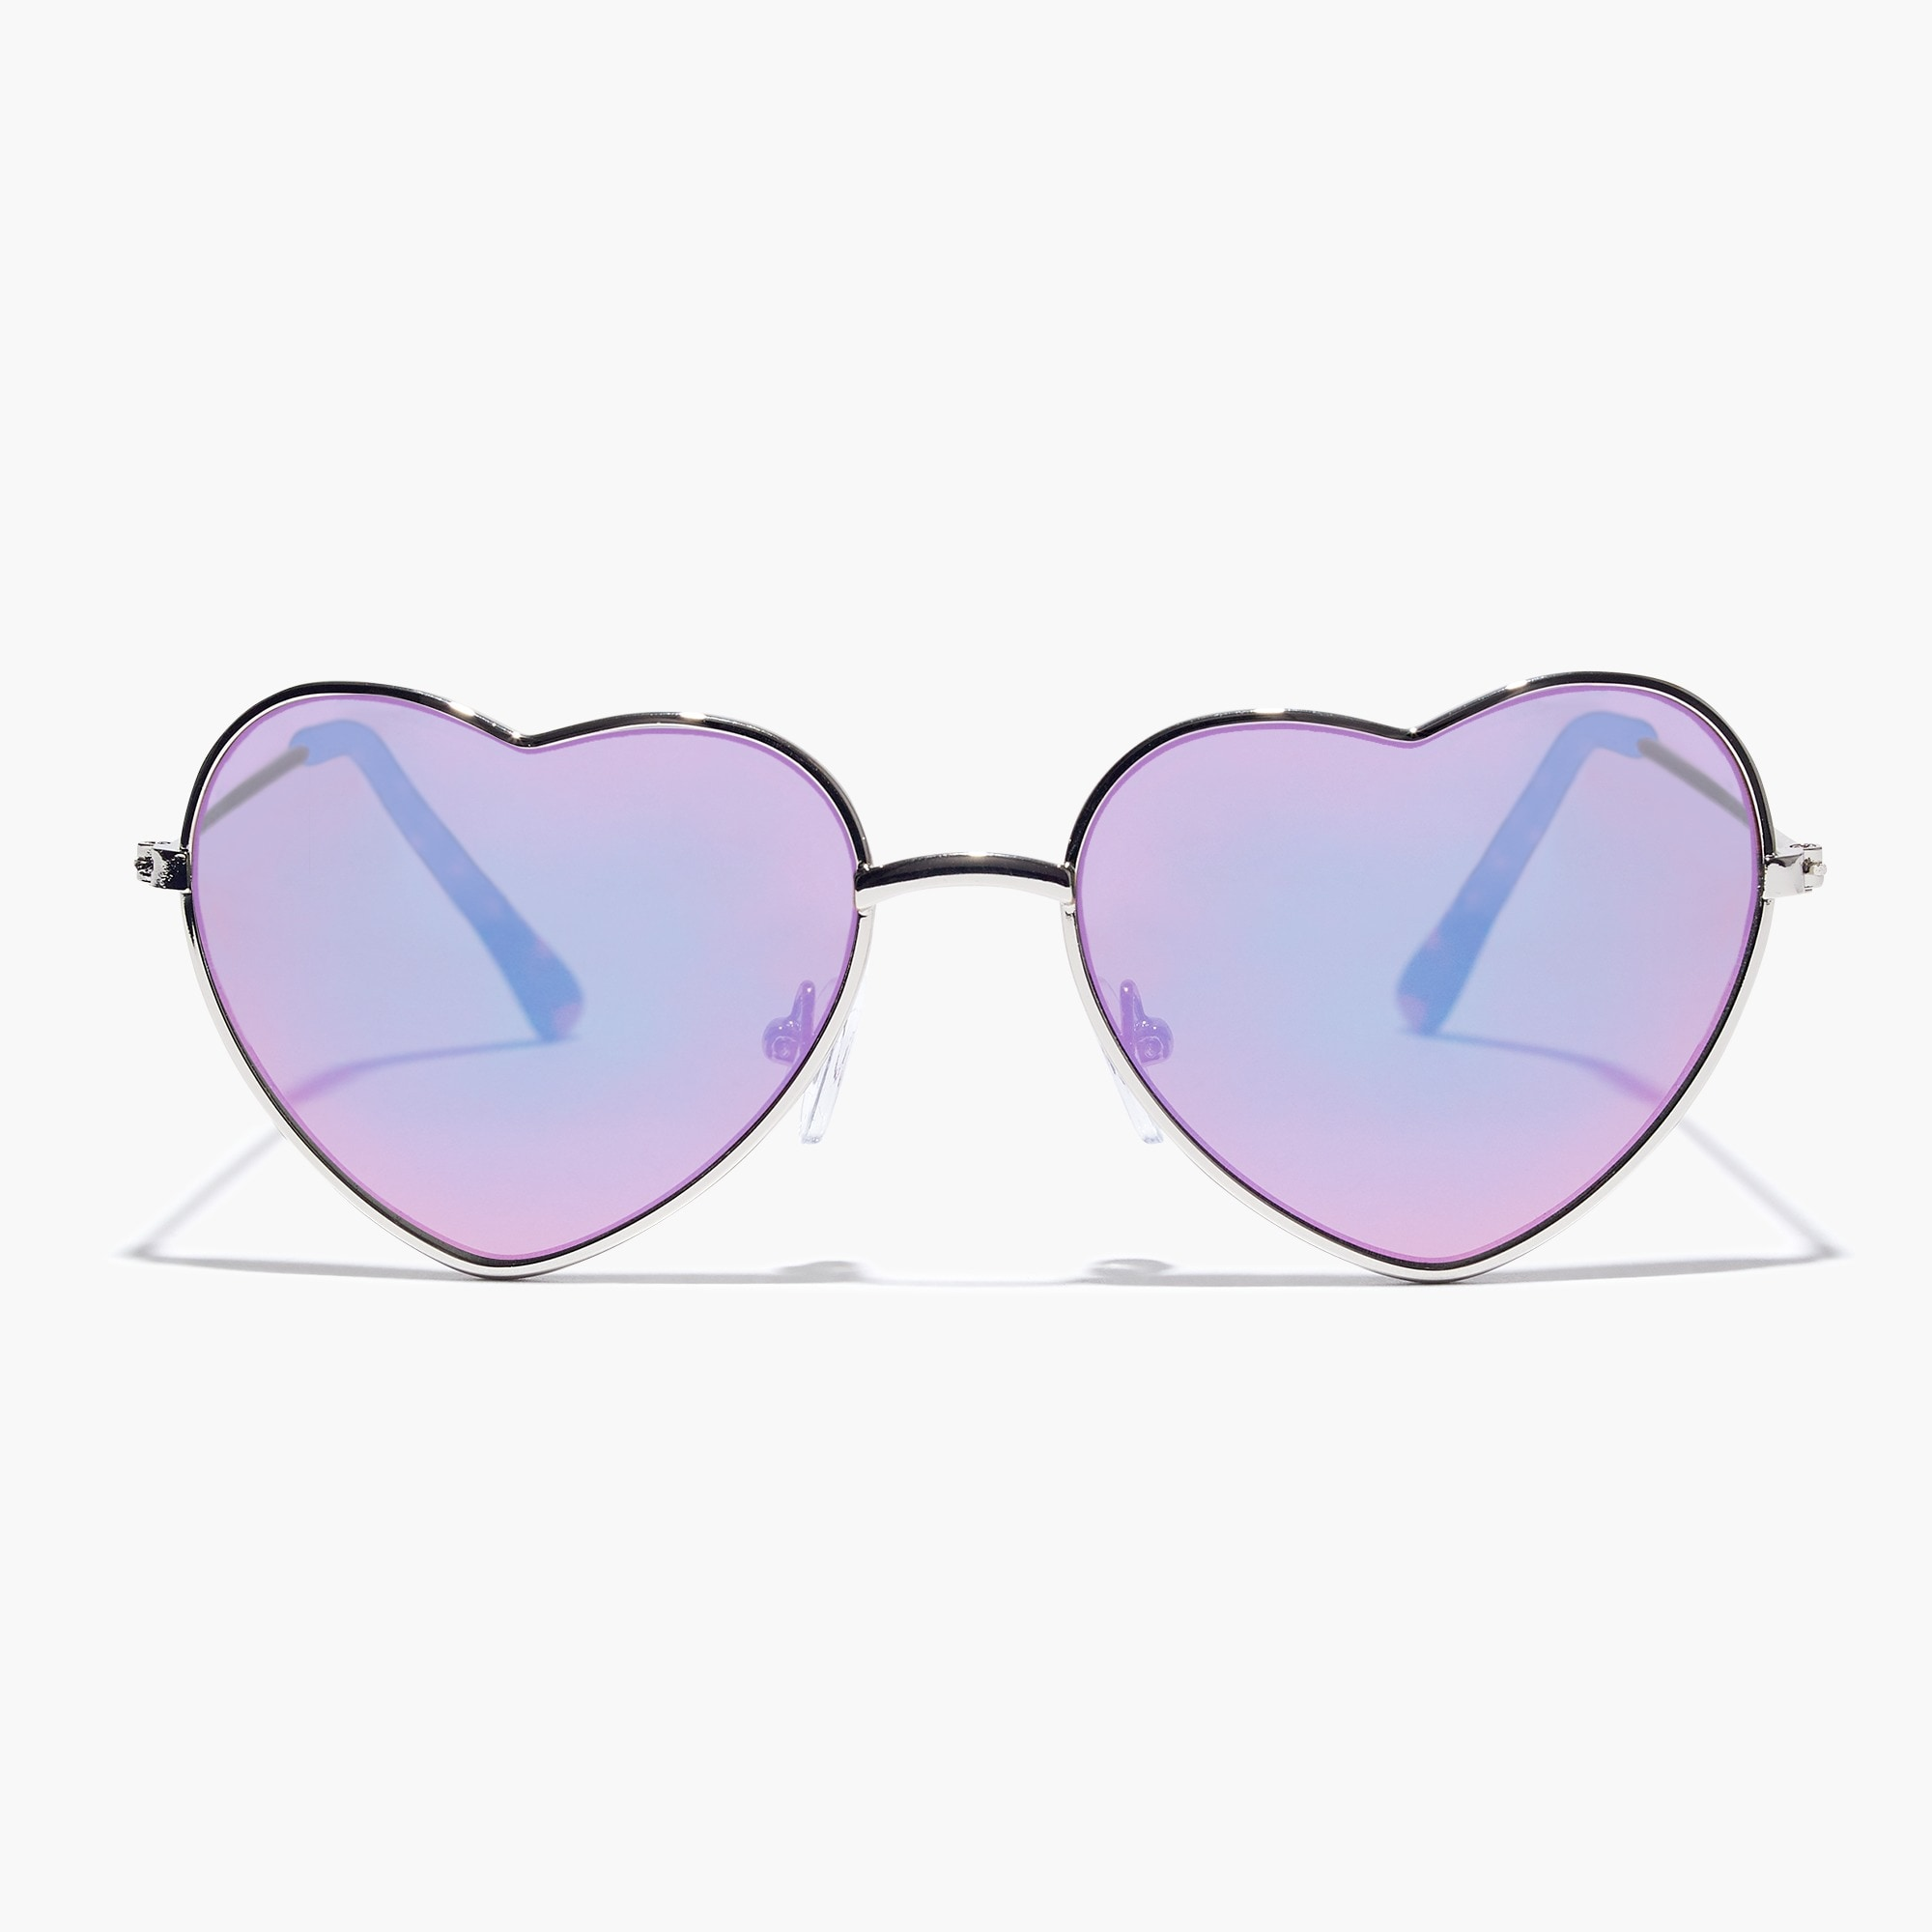 girls Girls' heart-shaped sunnies